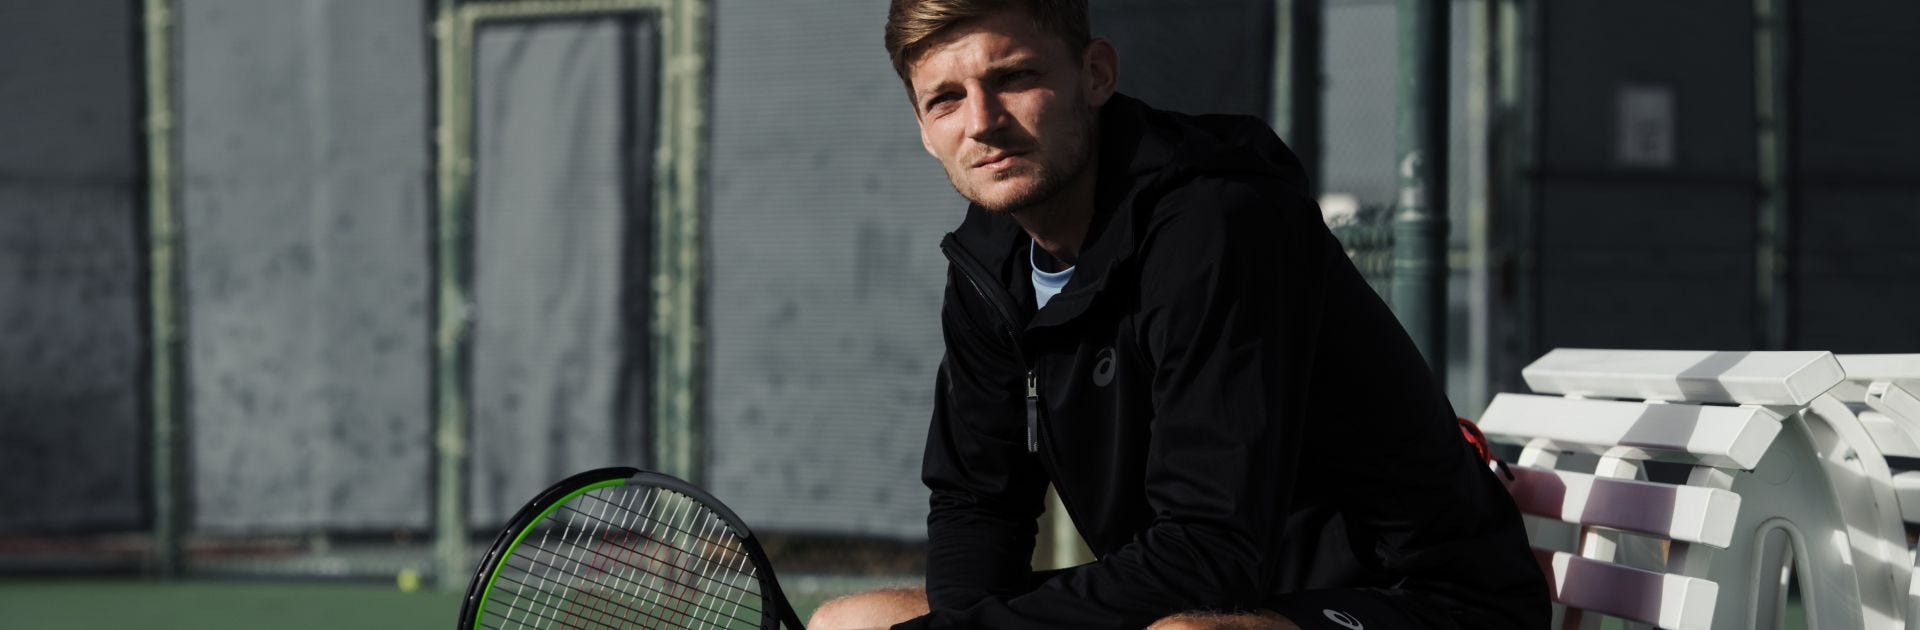 David Goffin on the tennis court